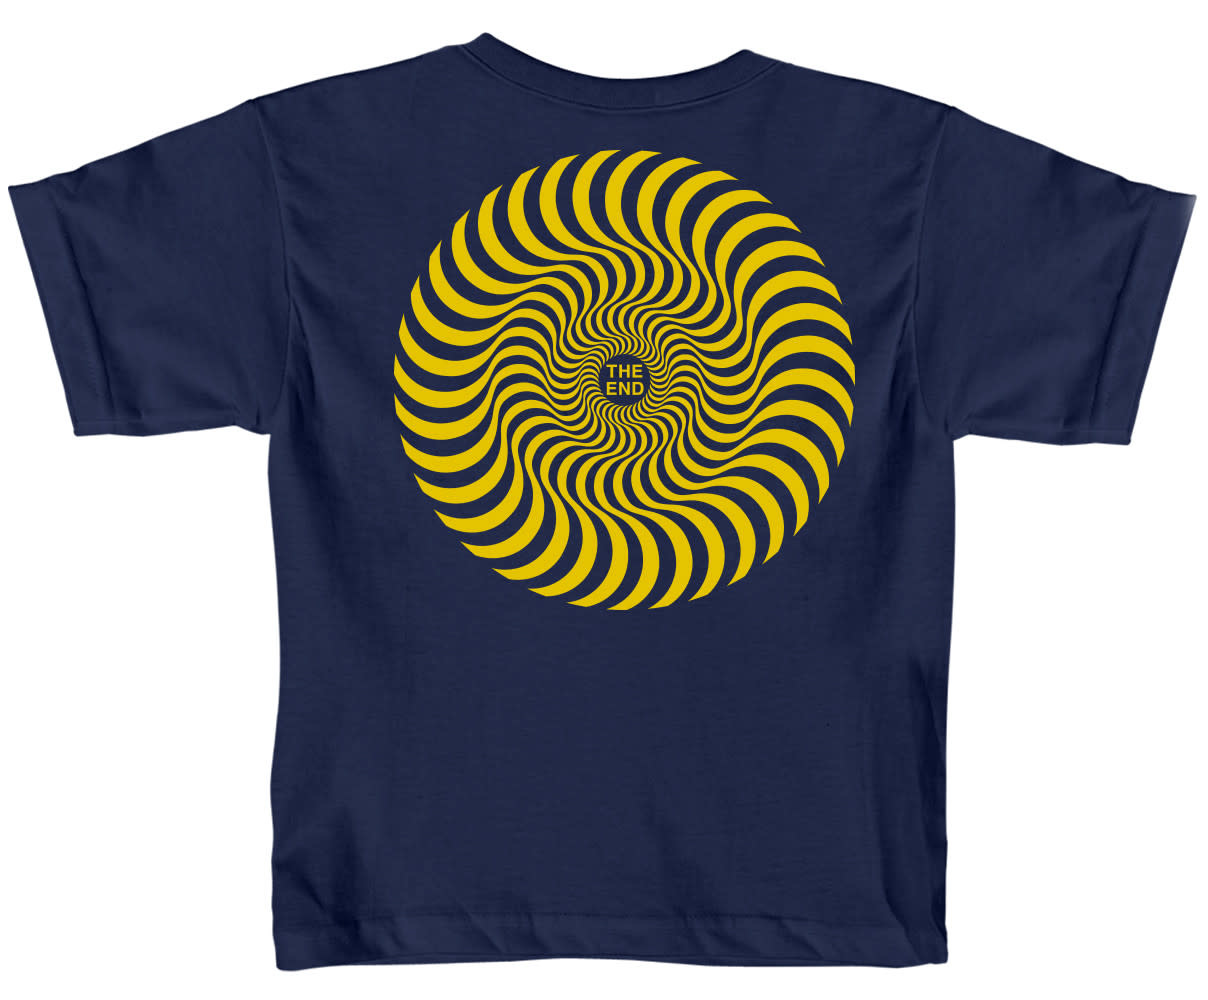 Spitfire Wheels Classic Swirl Toddler Navy/Yellow